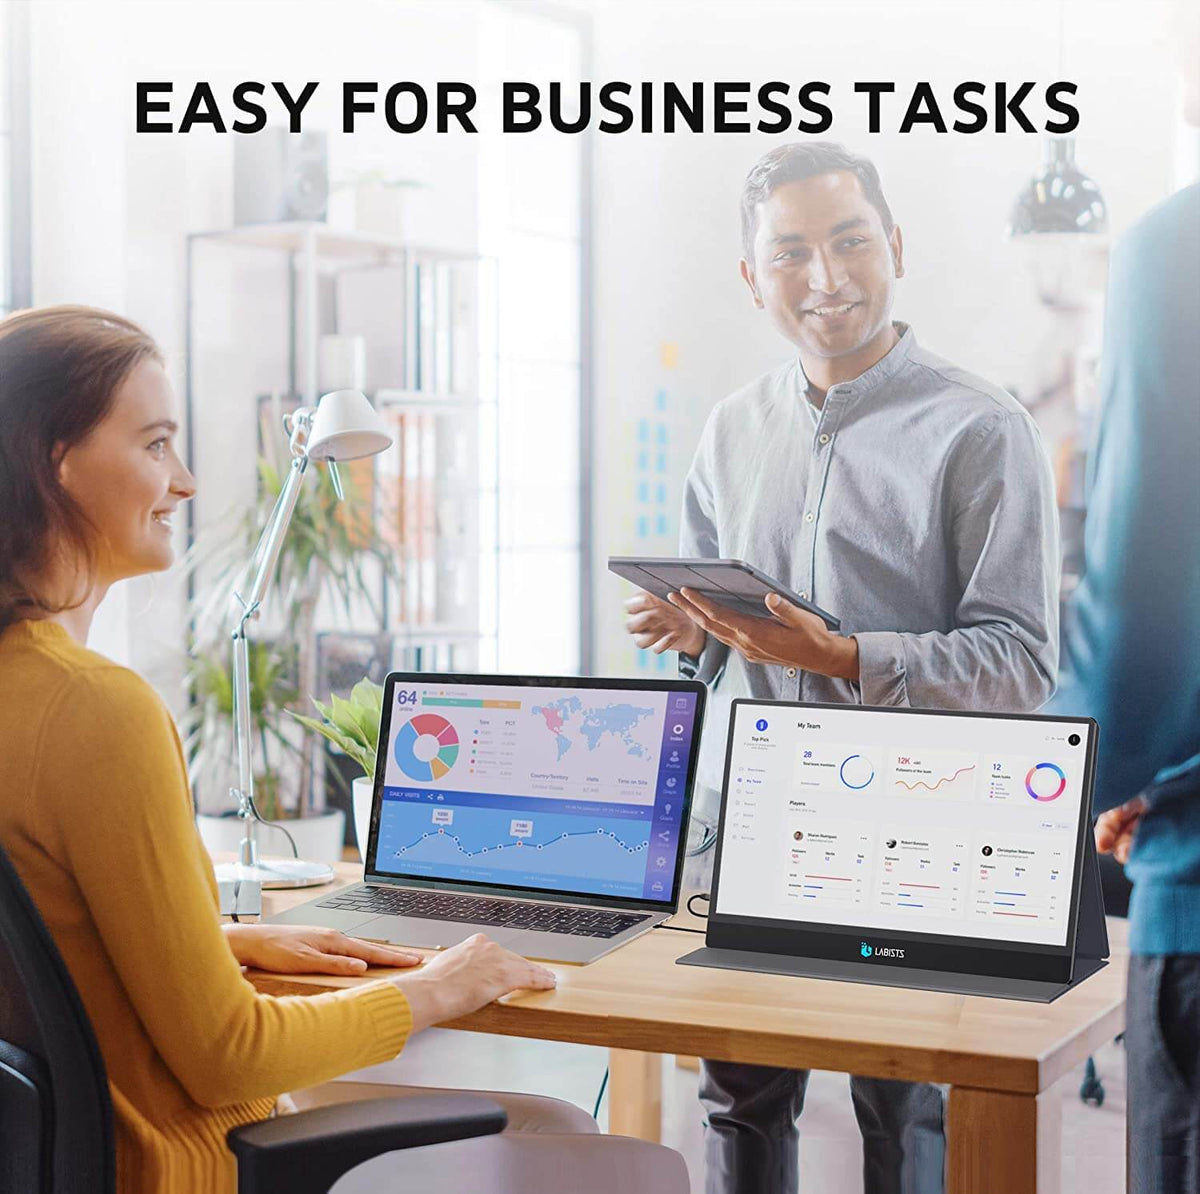 EASY FOR BUSINESS TASKS